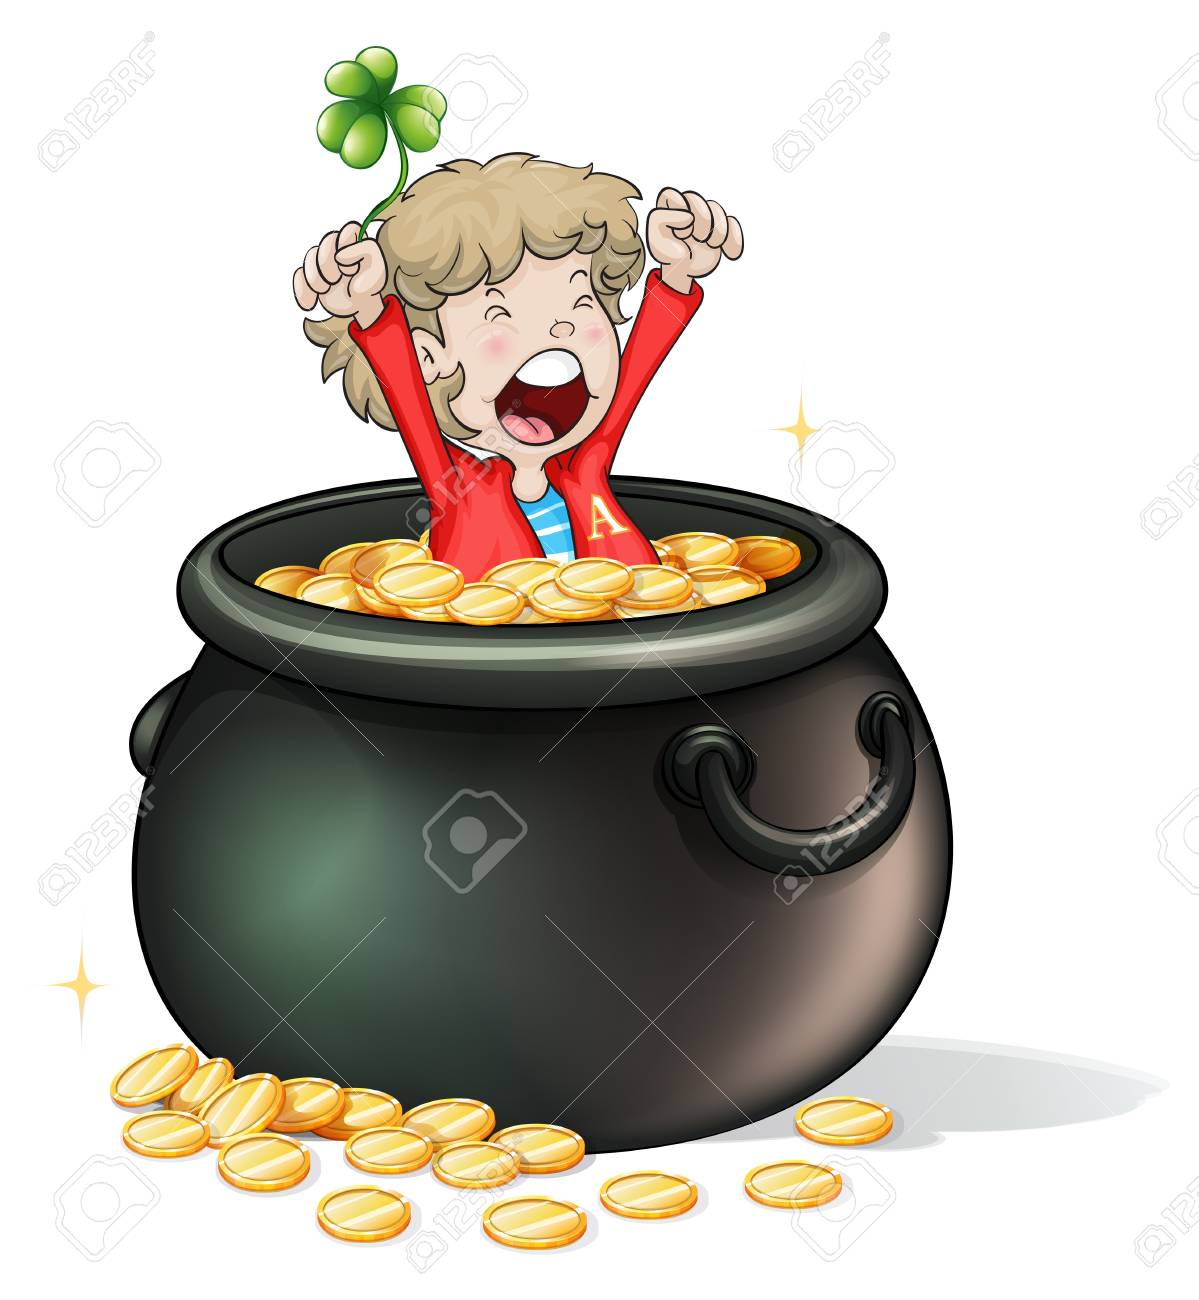 Illustration of a young boy inside a pot full of coins on a white background Stock Vector - 18266259